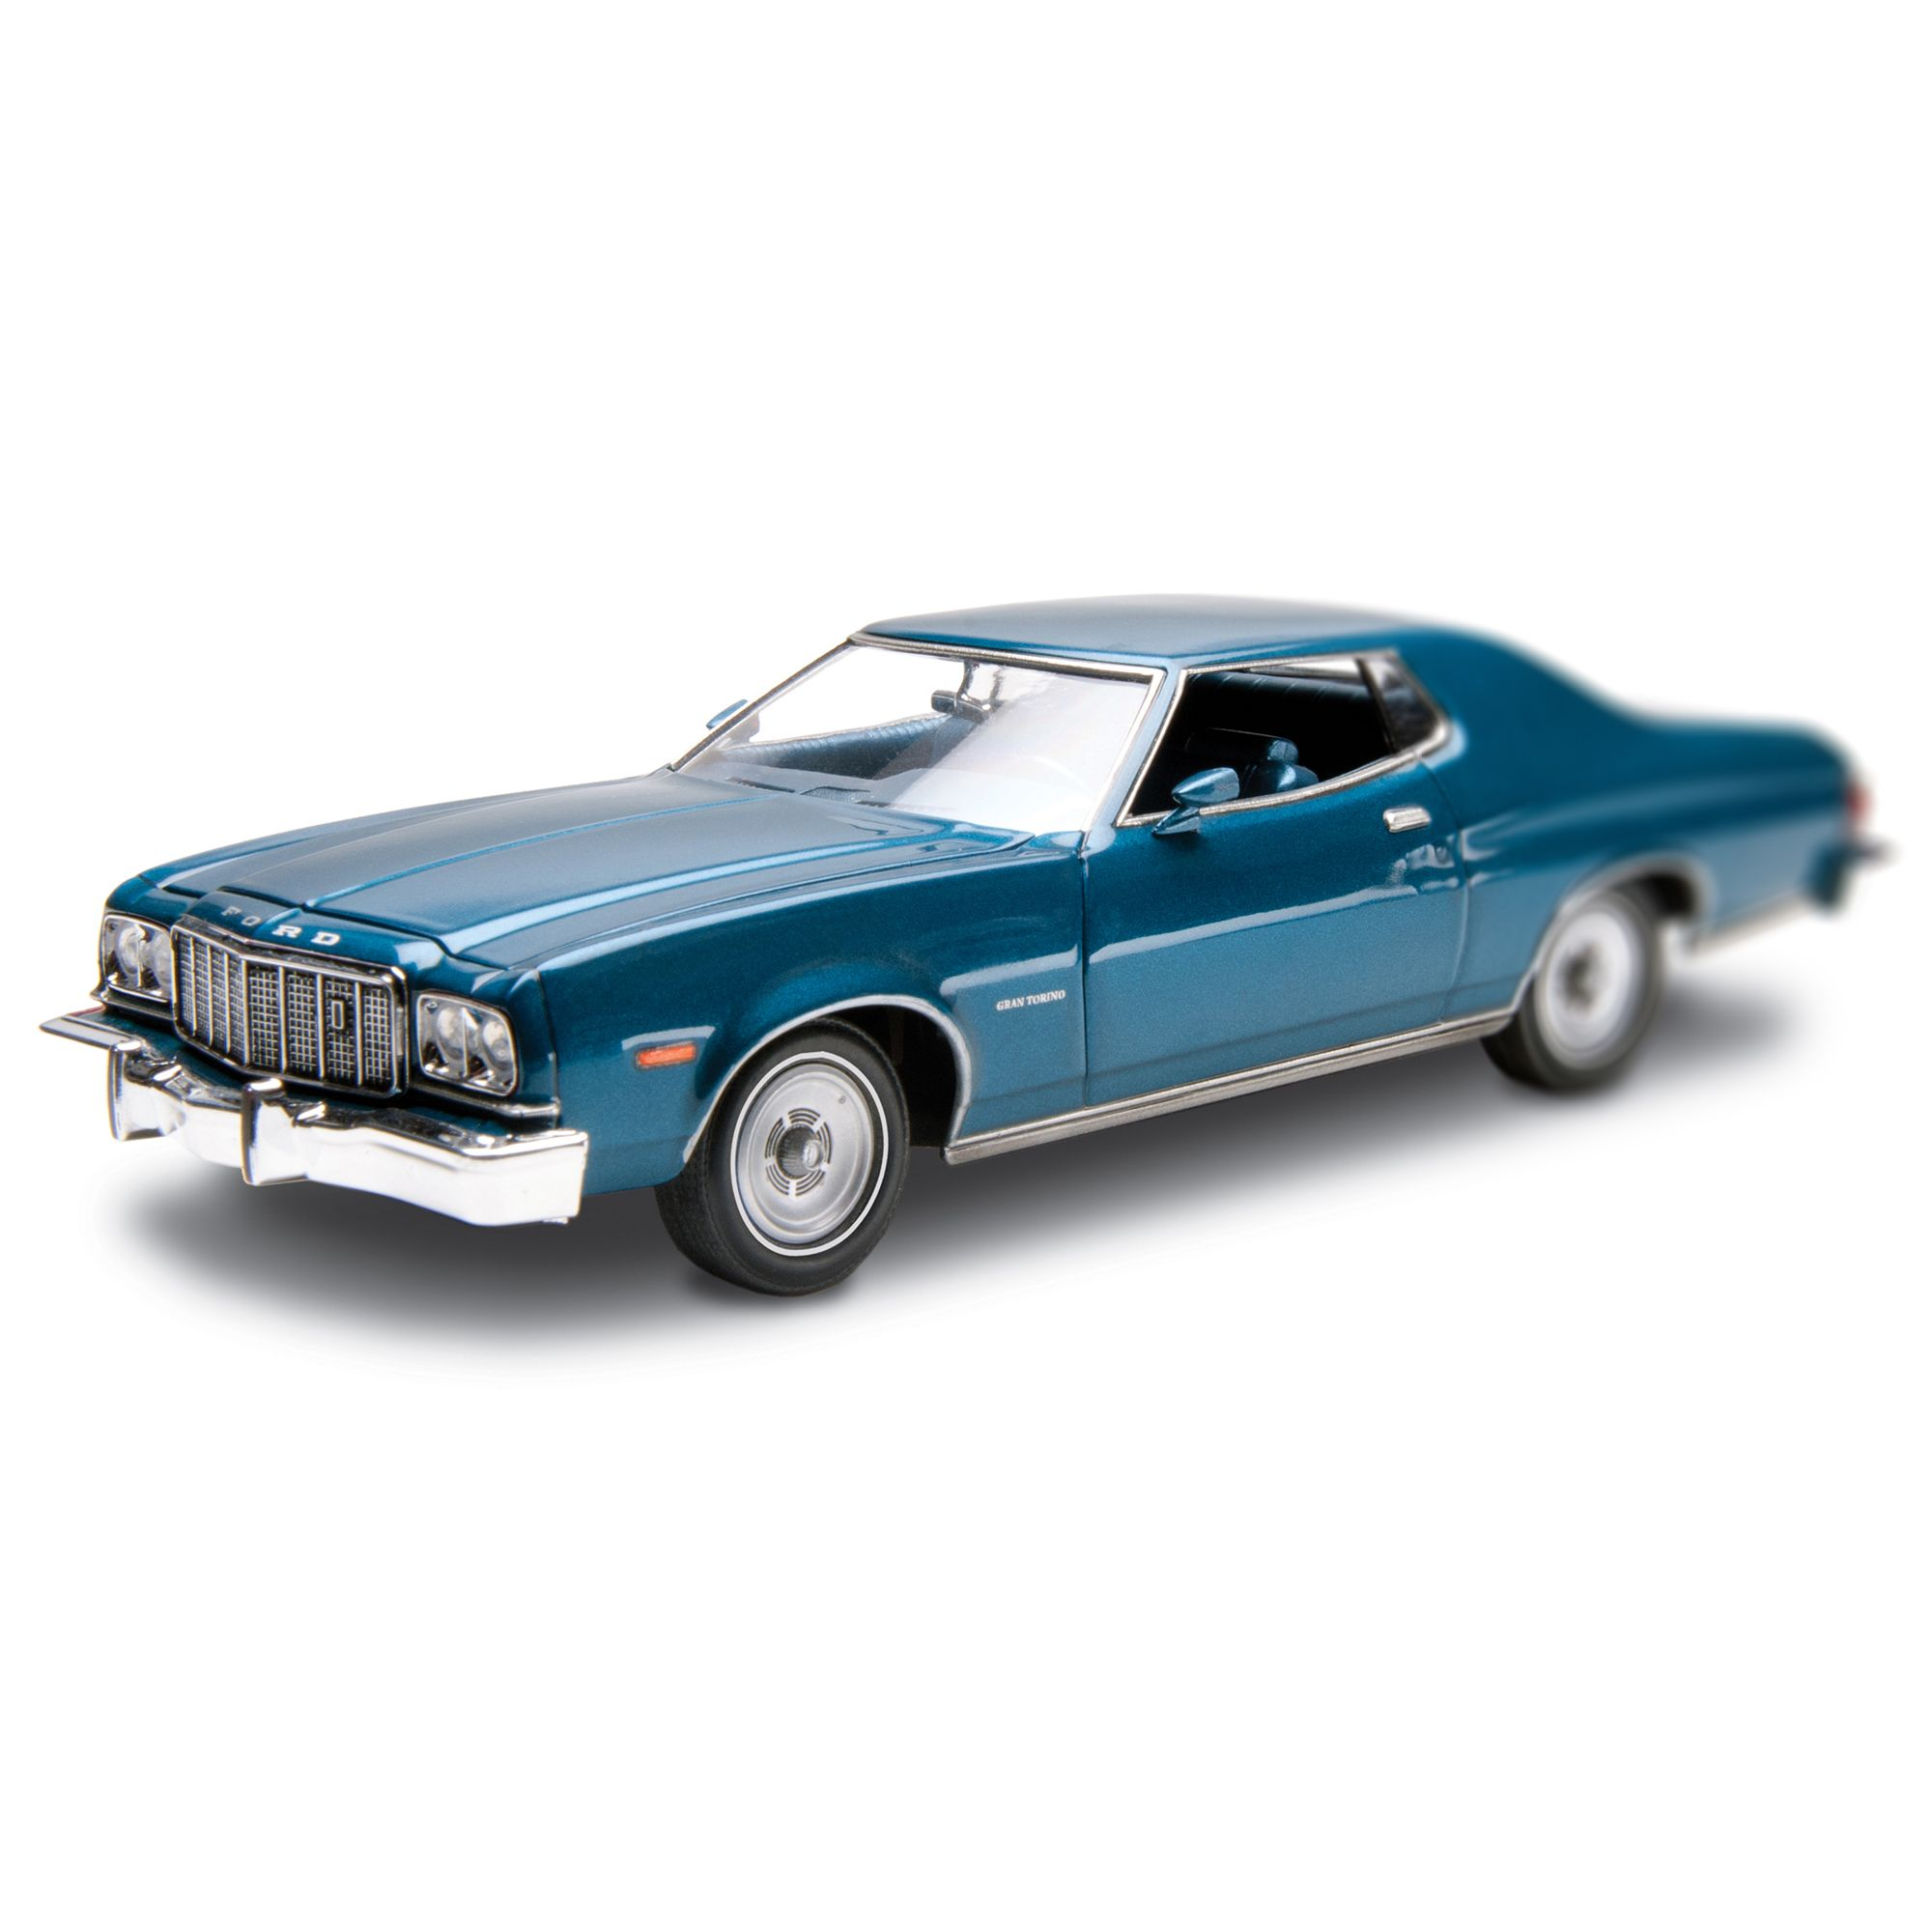 76 Ford Gran Torino 1 25 Scale Model Kit From Revell Kit Features Detailed 351 Cubic Inch Windsor Engine Tampo Revell Model Kits Model Kit Scale Model Kits